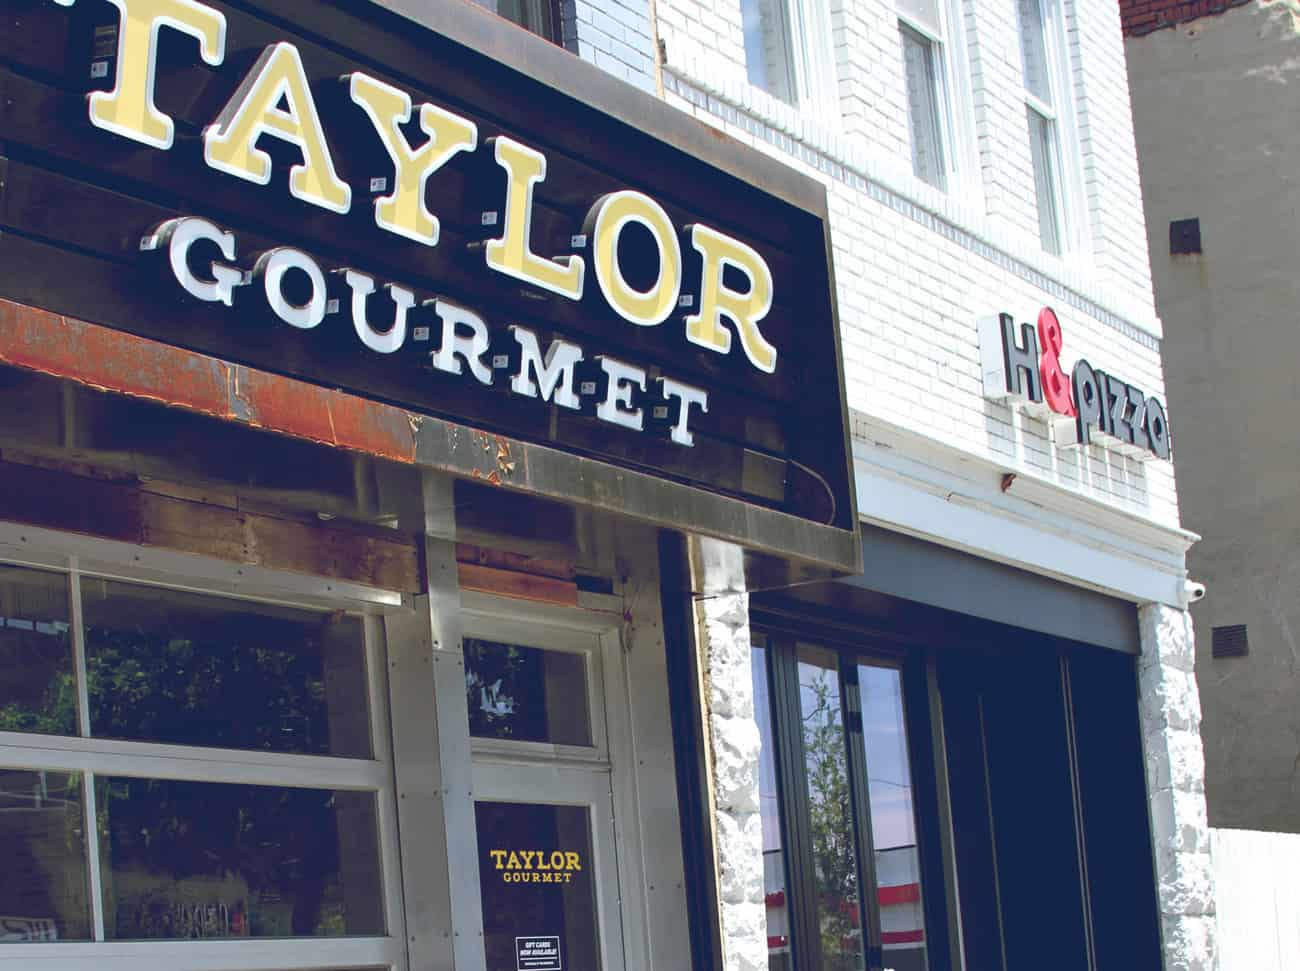 Taylor Gormet/H&Pizza on H Street